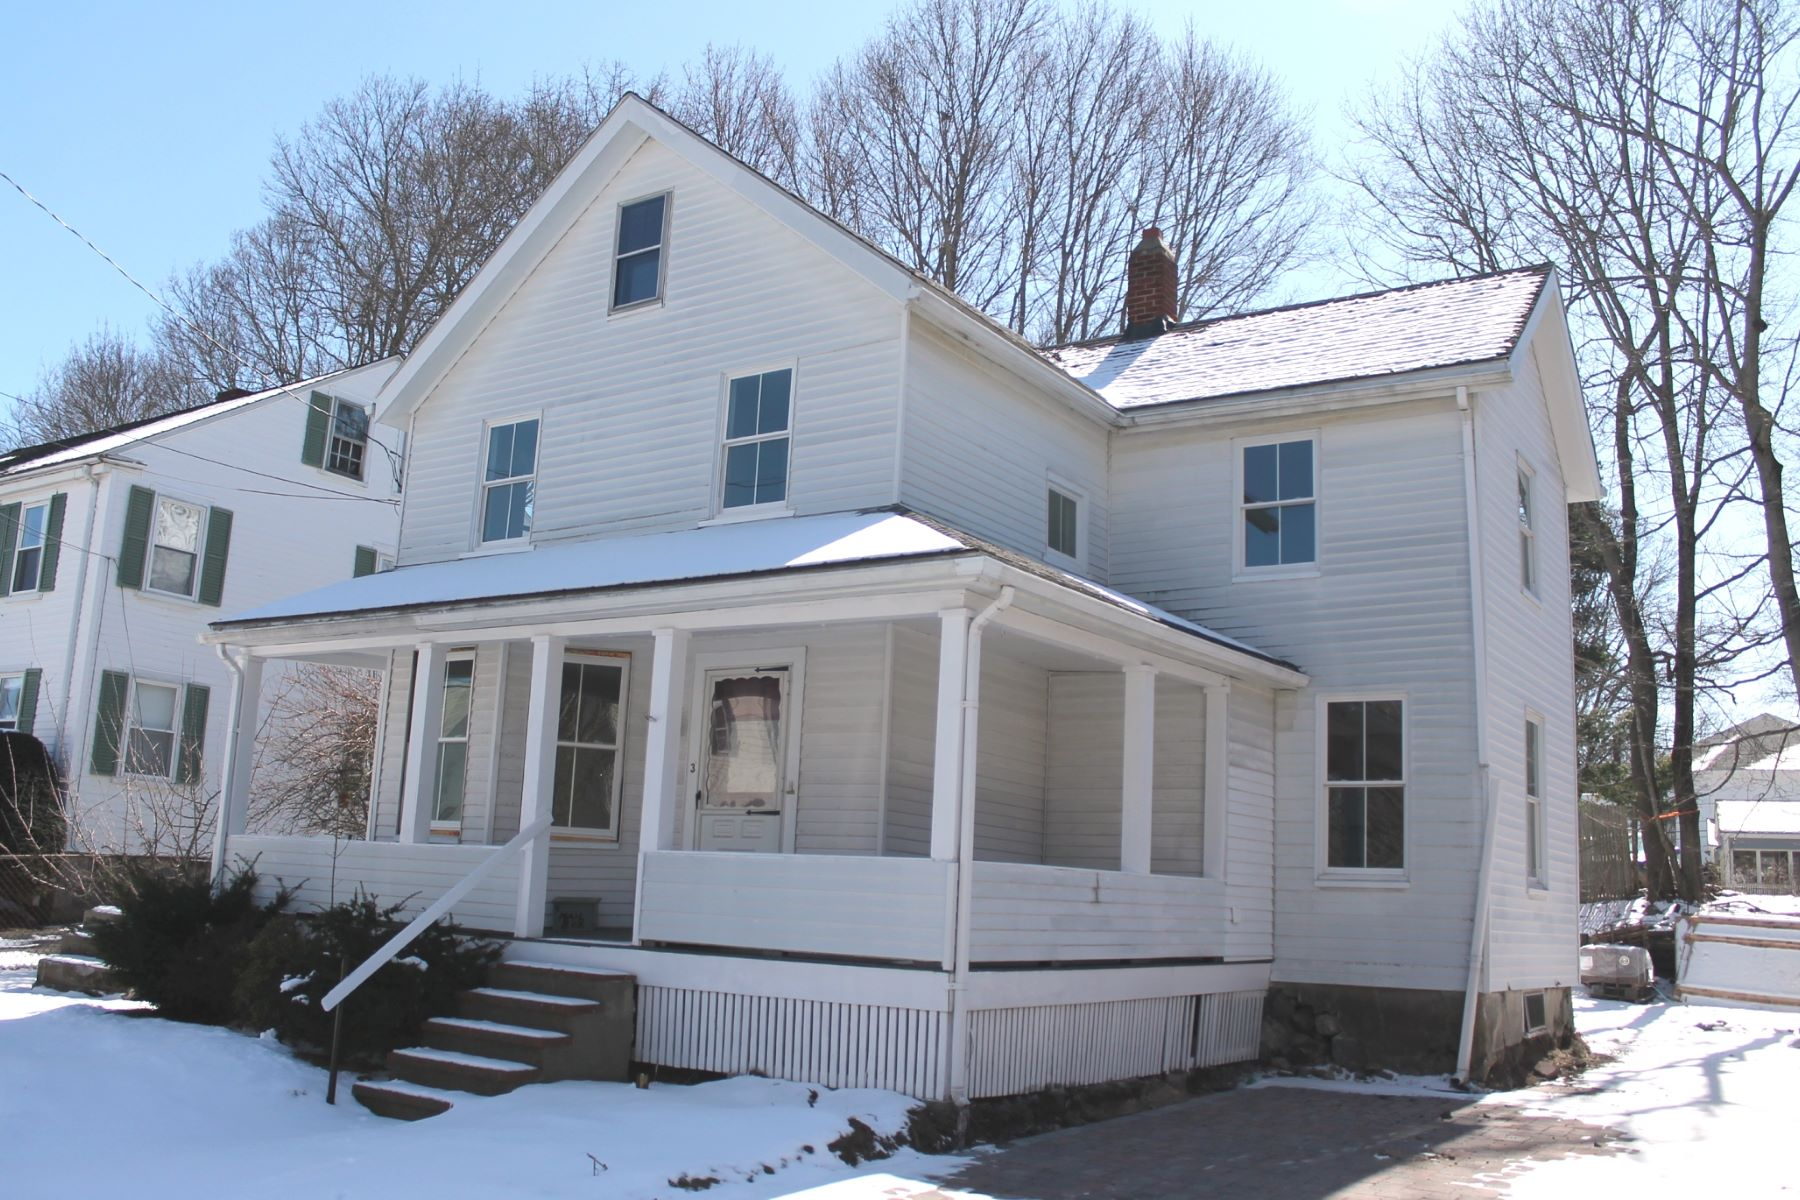 Single Family Home for Rent at Conveniently Located 3 Curve Street Lexington, Massachusetts 02420 United States